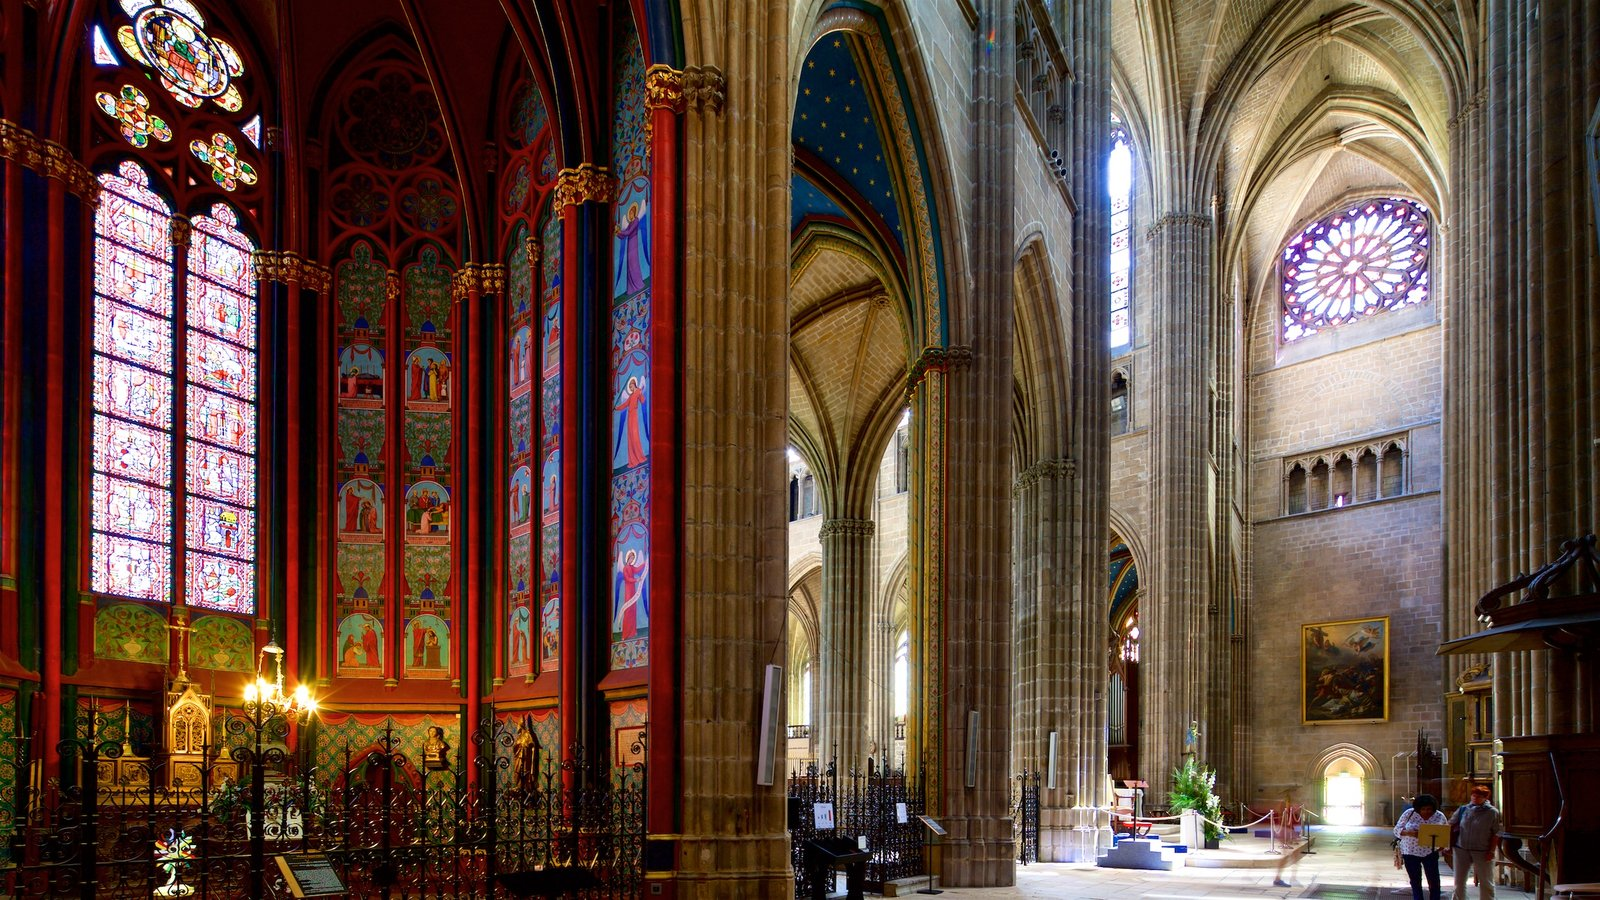 Limoges Cathedral featuring heritage elements, interior views and a church or cathedral